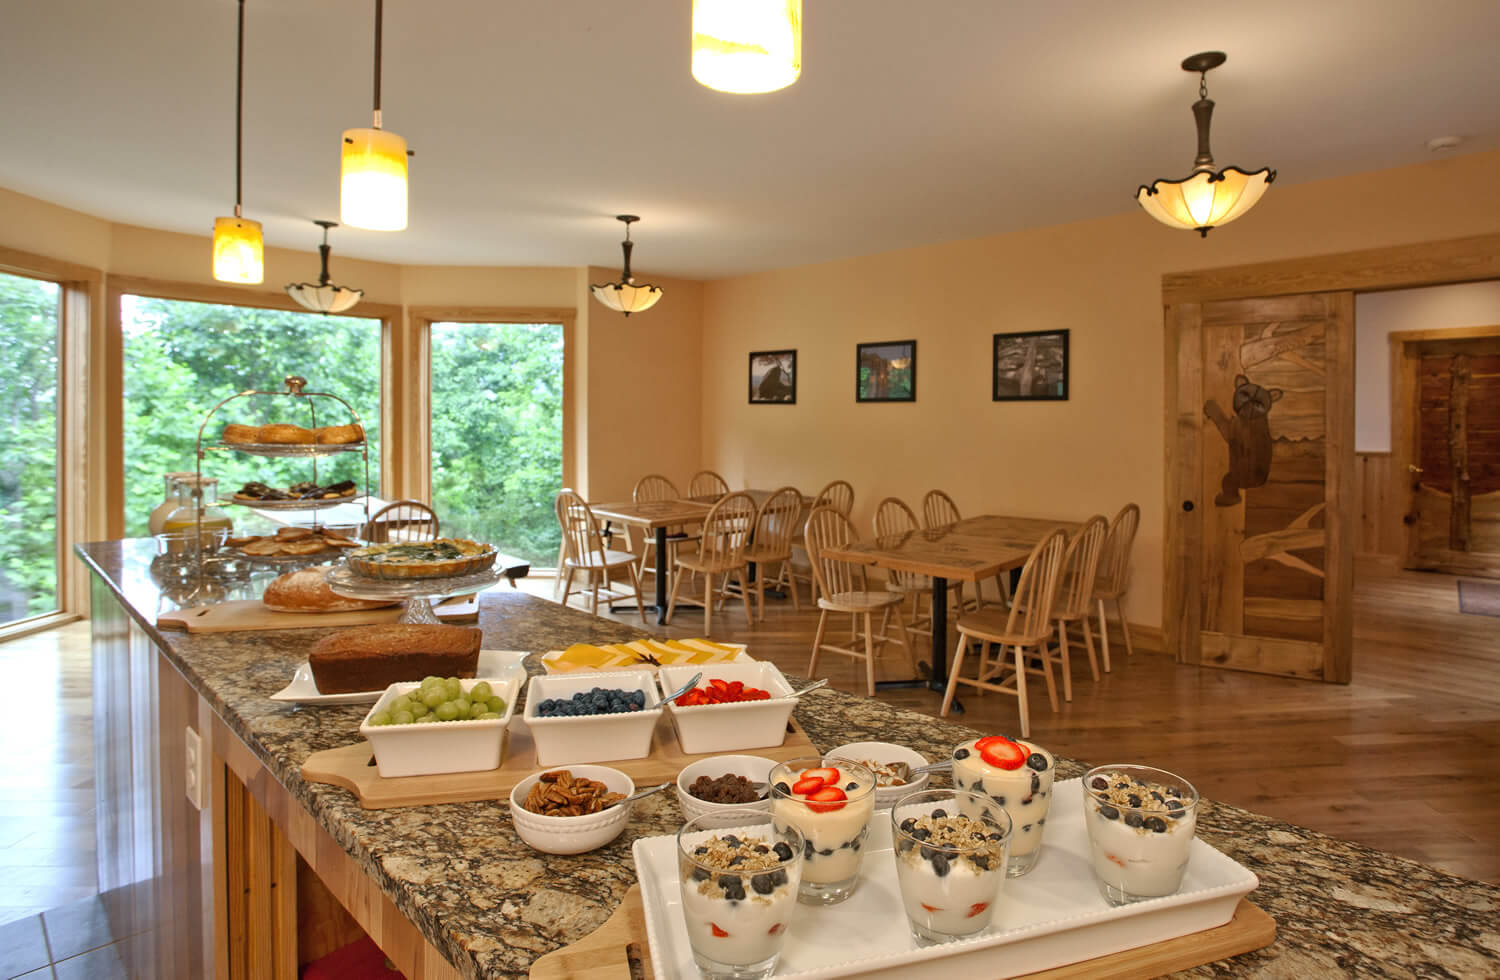 Delicious yogurt parfaits and other fruit and goodies rest on the buffet in this warm yellow dining room